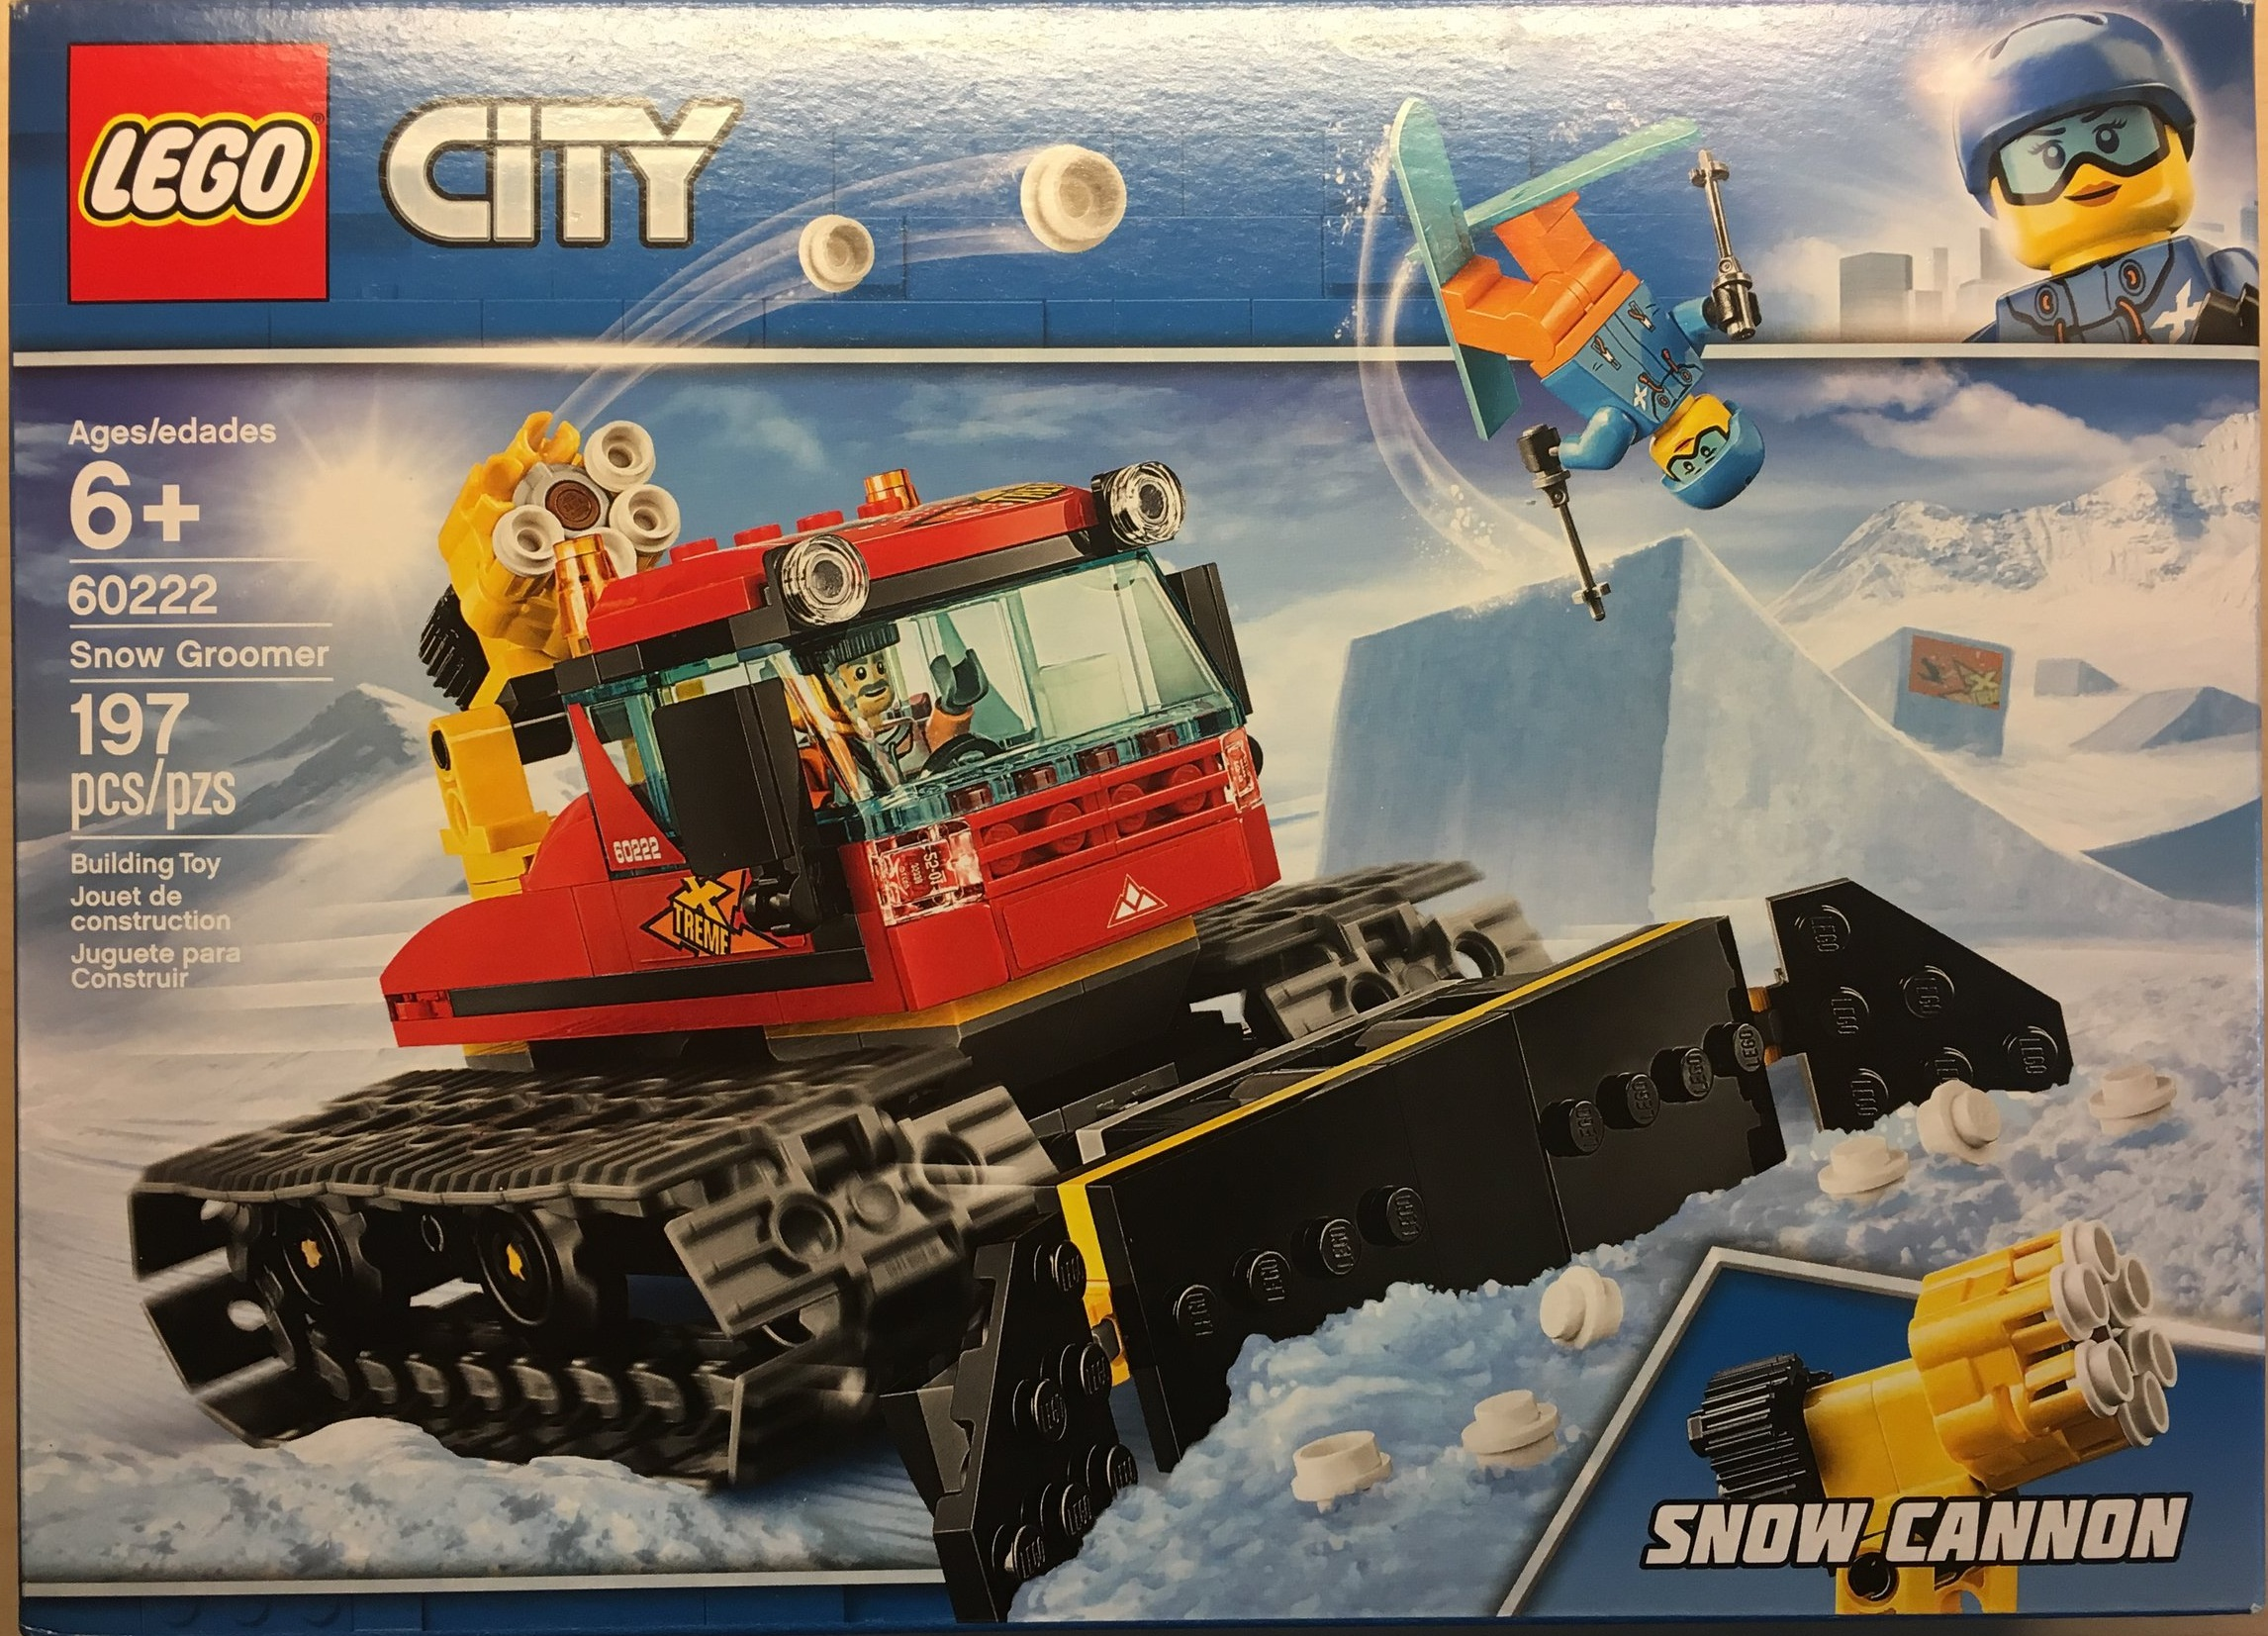 1Snow Review60222 Set Groomer City Lego 8nwmN0